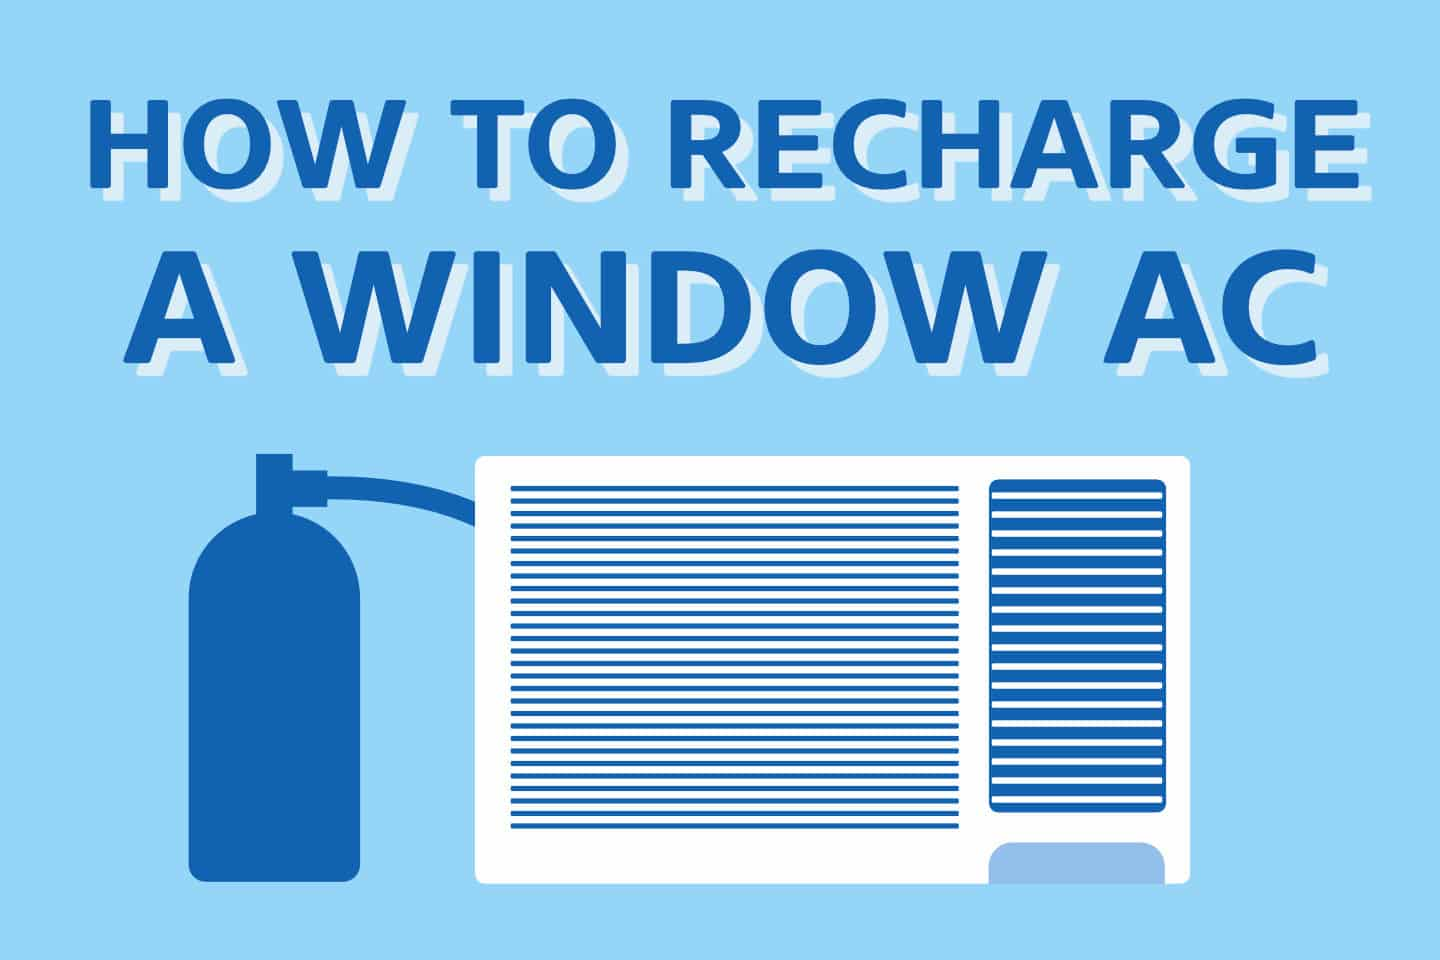 ❄️ 7 Steps To Fully Recharge Your Window AC